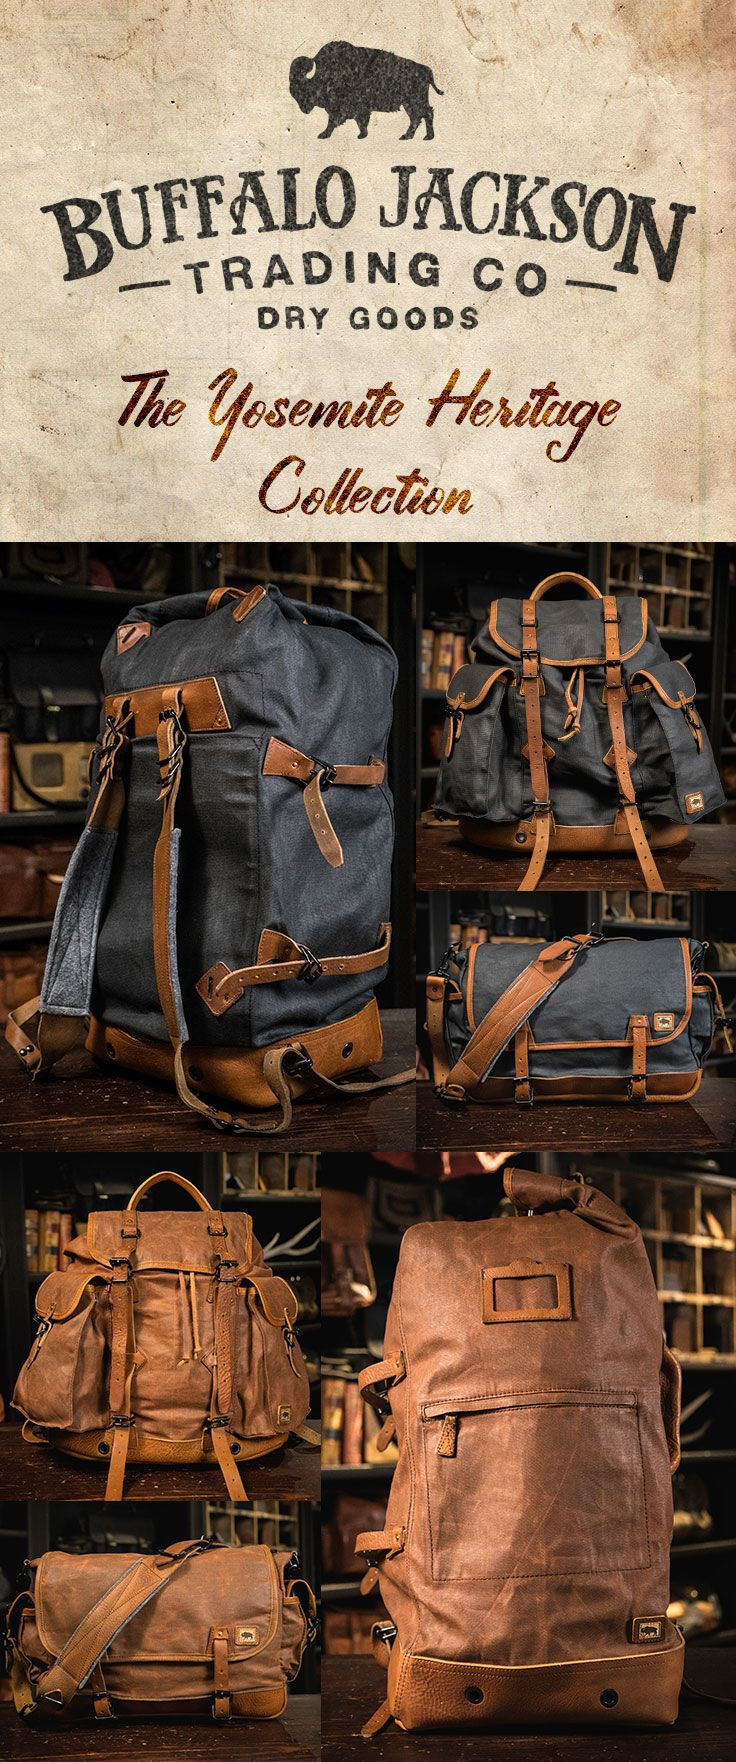 Crafted of waxed canvas and full grain leather with distressed vintage finish, these bags were built to honor the memory of good men and good days. One of the best gifts for him this Christmas - or any time of year. vintage military duffle backpack | vintage military rucksack | vintage military messenger bag